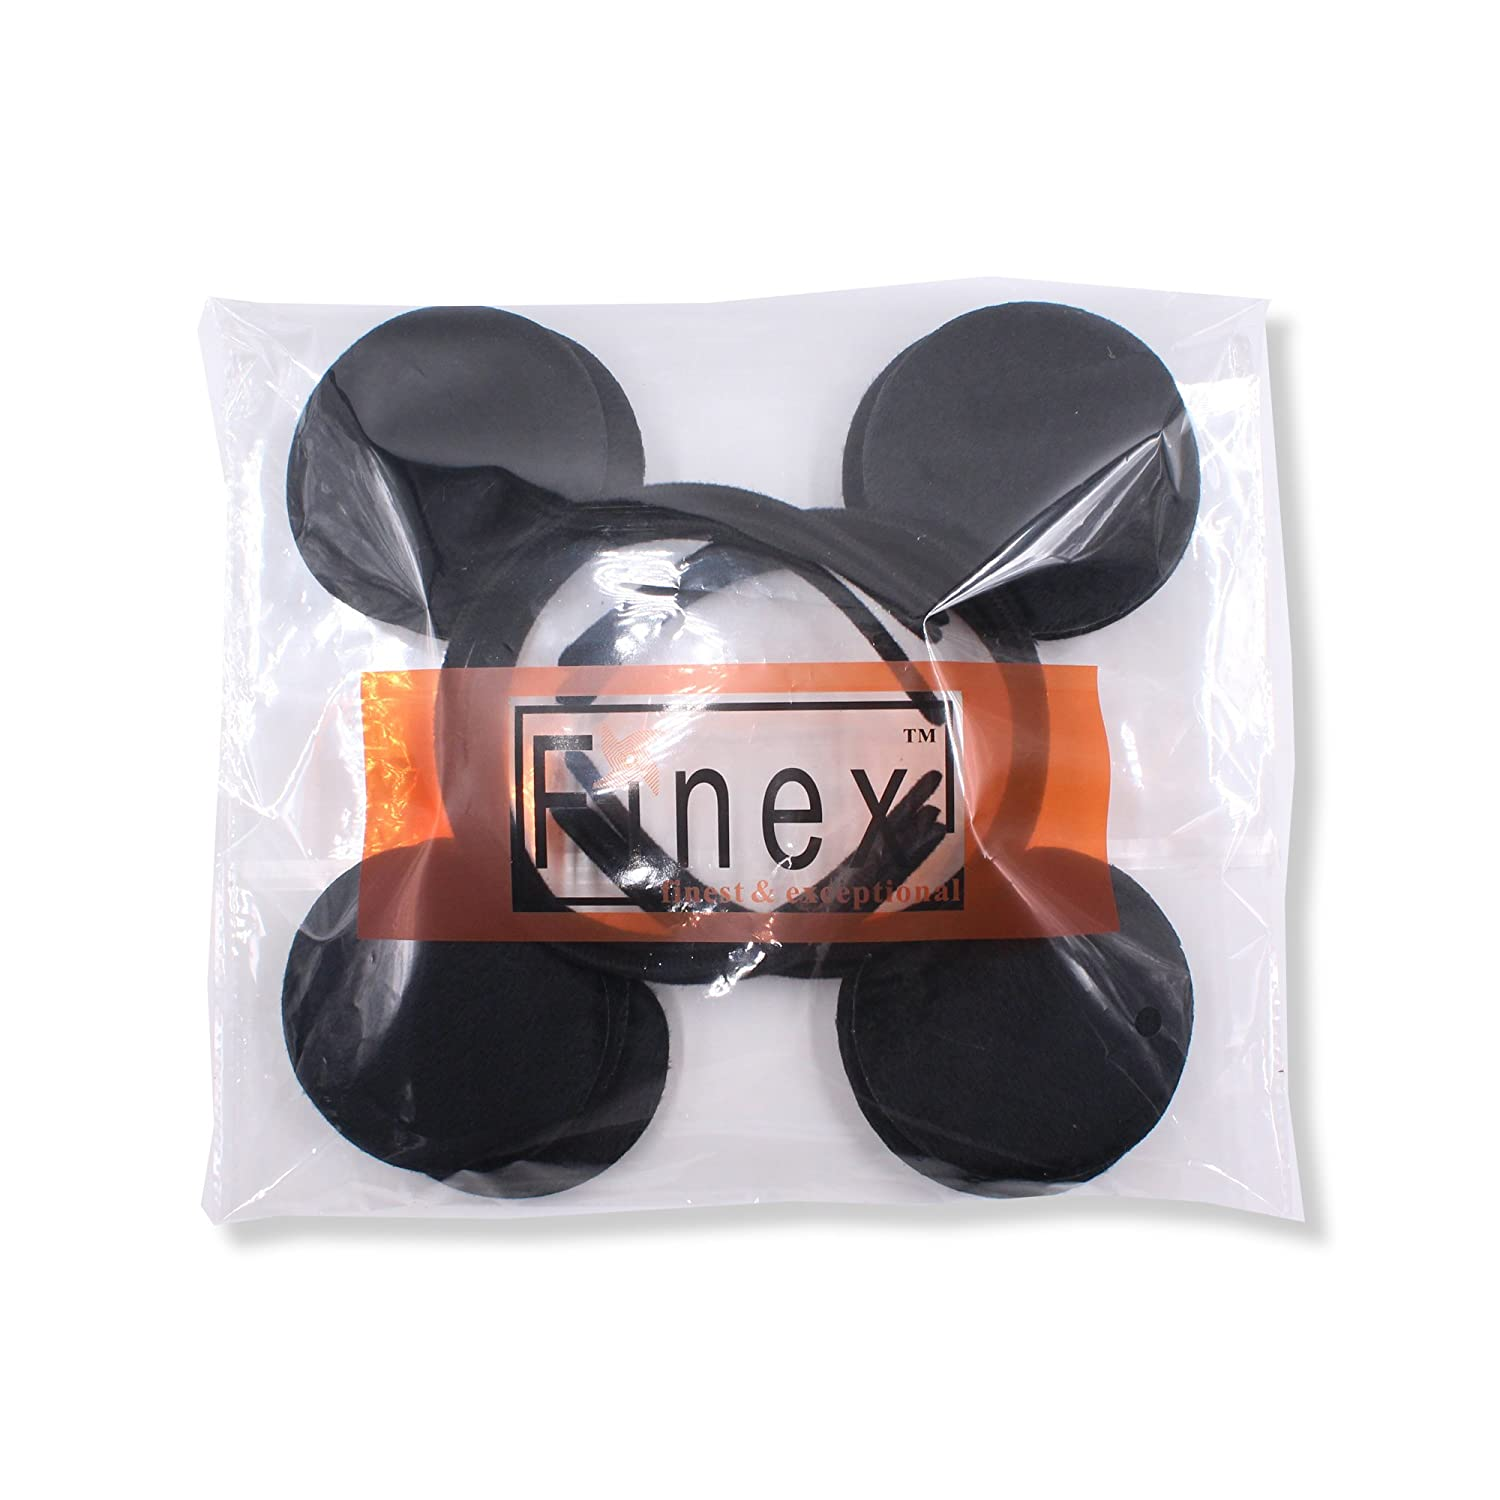 Girls' Clothing Hair Accessories 12pcs Hair Accessories Minnie/mickey Ears Solid Black & Red Bow Headband For Boys/girls Birthday Party Celebration Cosplay